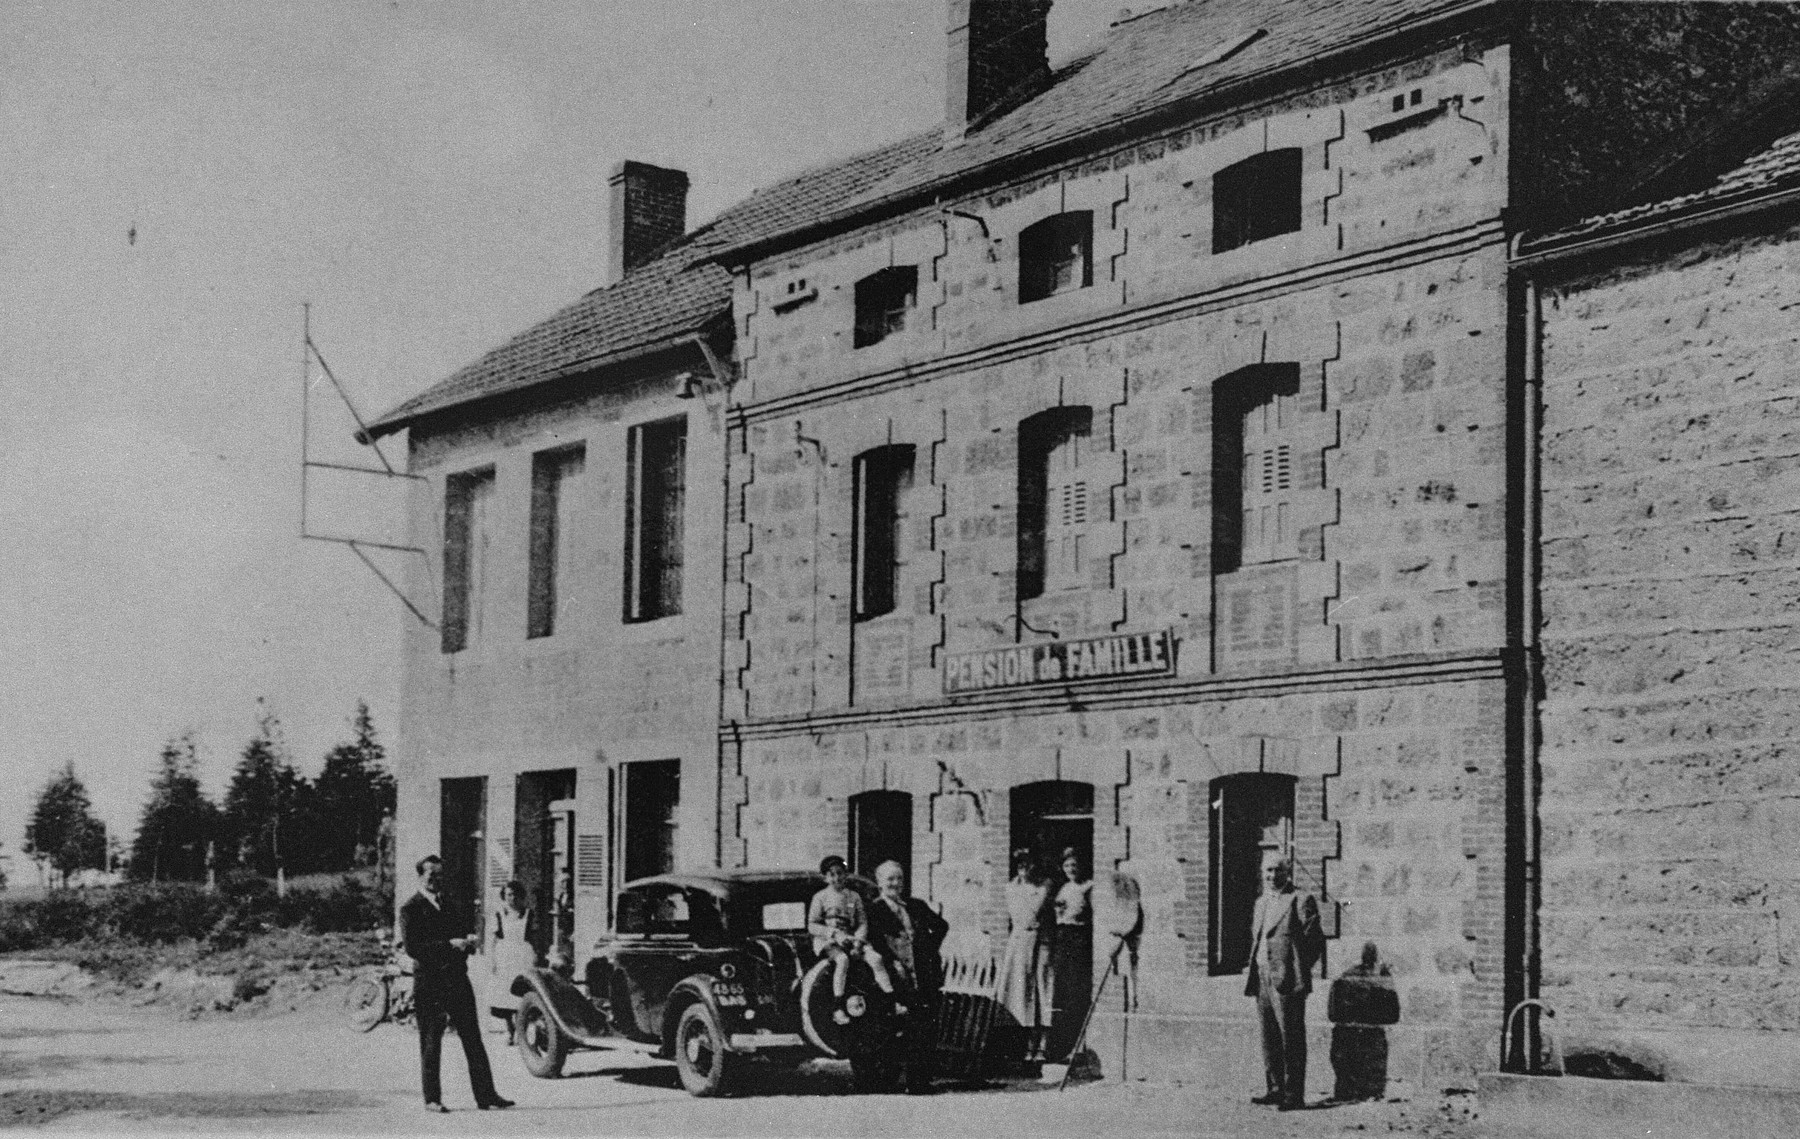 Picture postcard of the Les Grillons pension in Le Chambon-sur-Lignon, which during World War II served as a home for Jewish and non-Jewish refugee children.